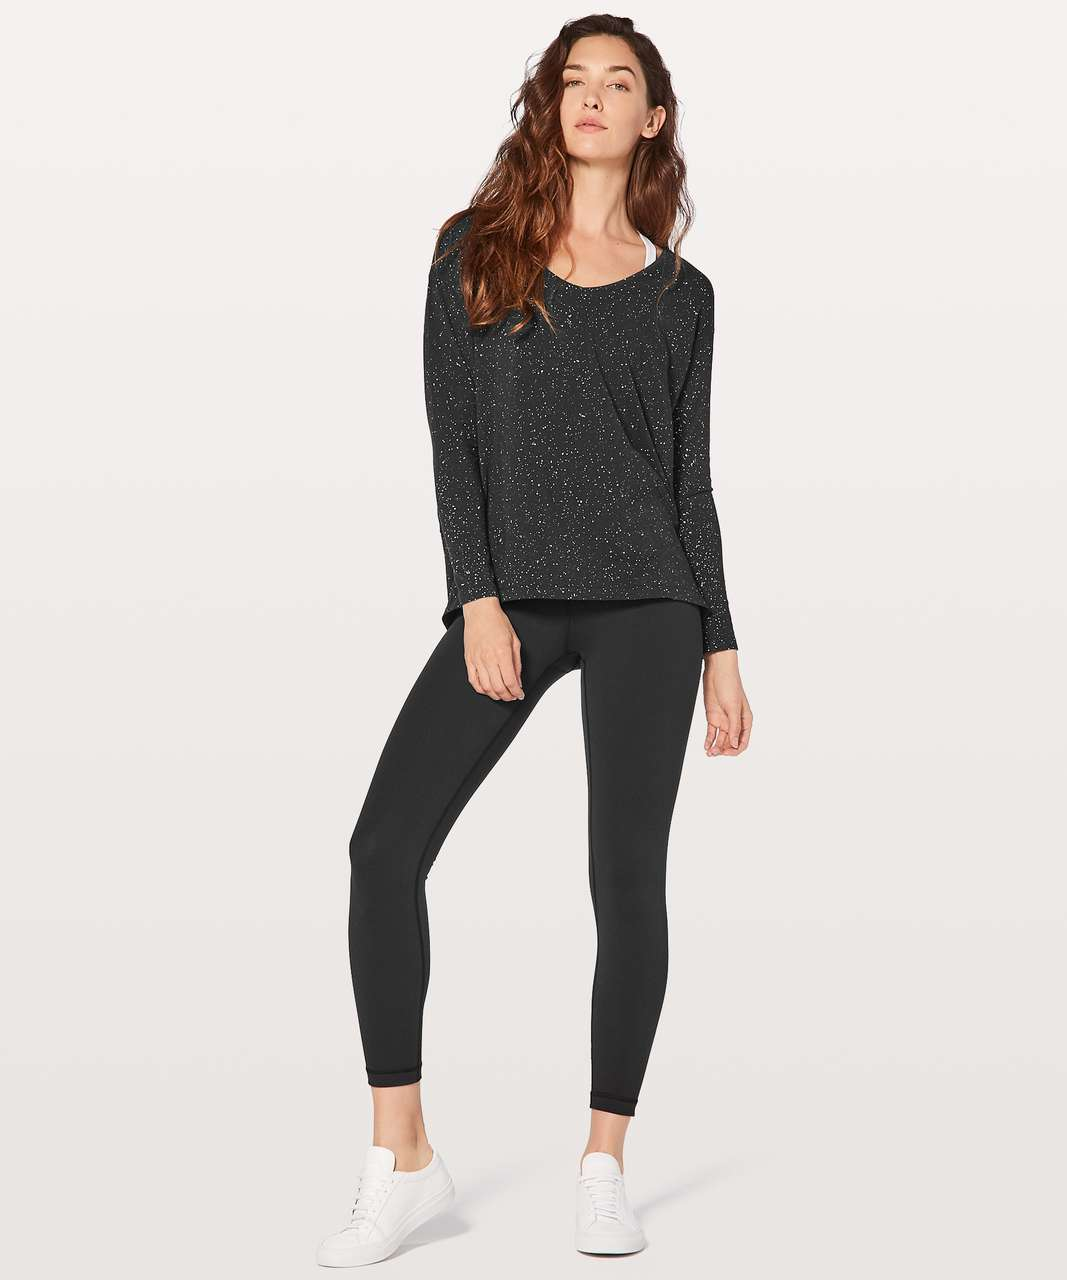 Lululemon Back In Action Long Sleeve V - Splatter Dye Black